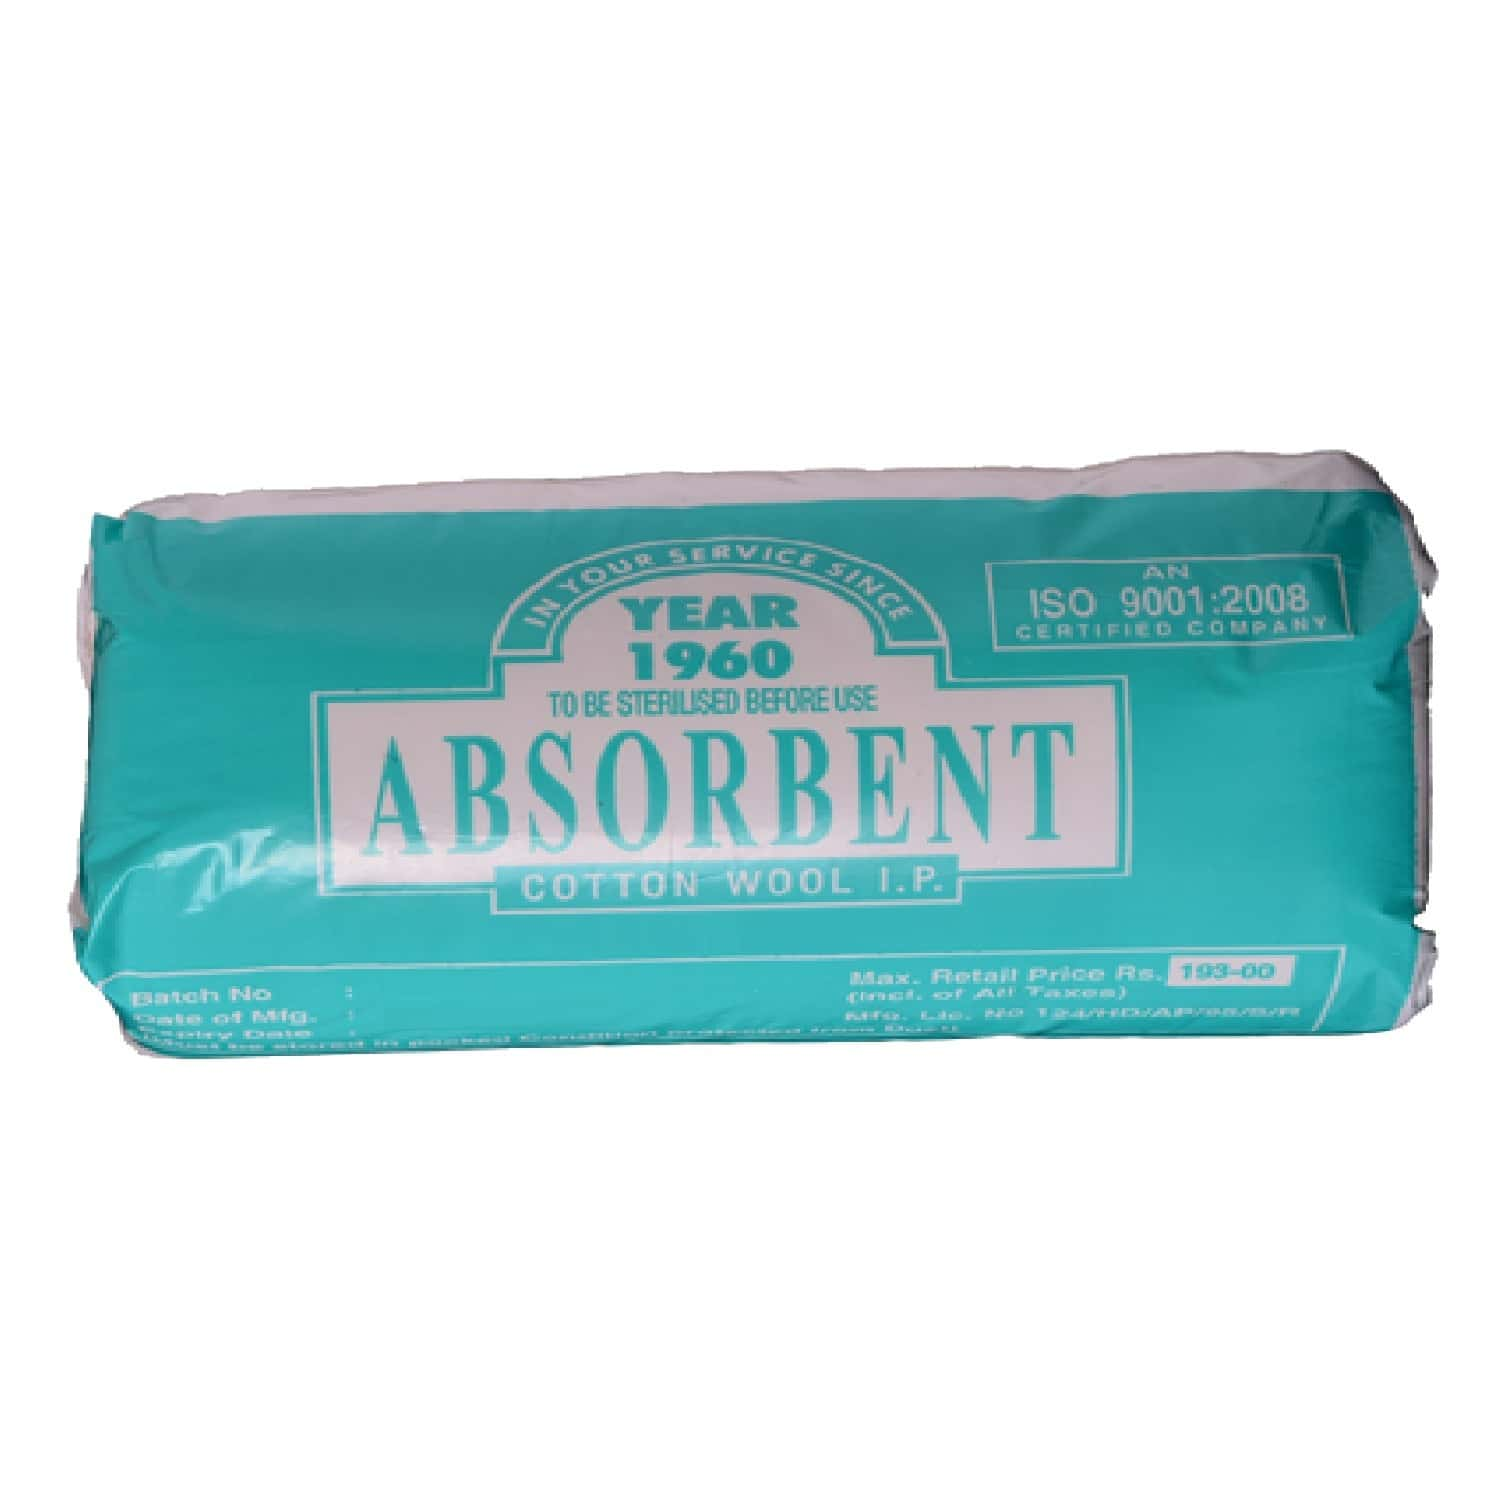 Absorbent Cotton Wool By National 400 Gm